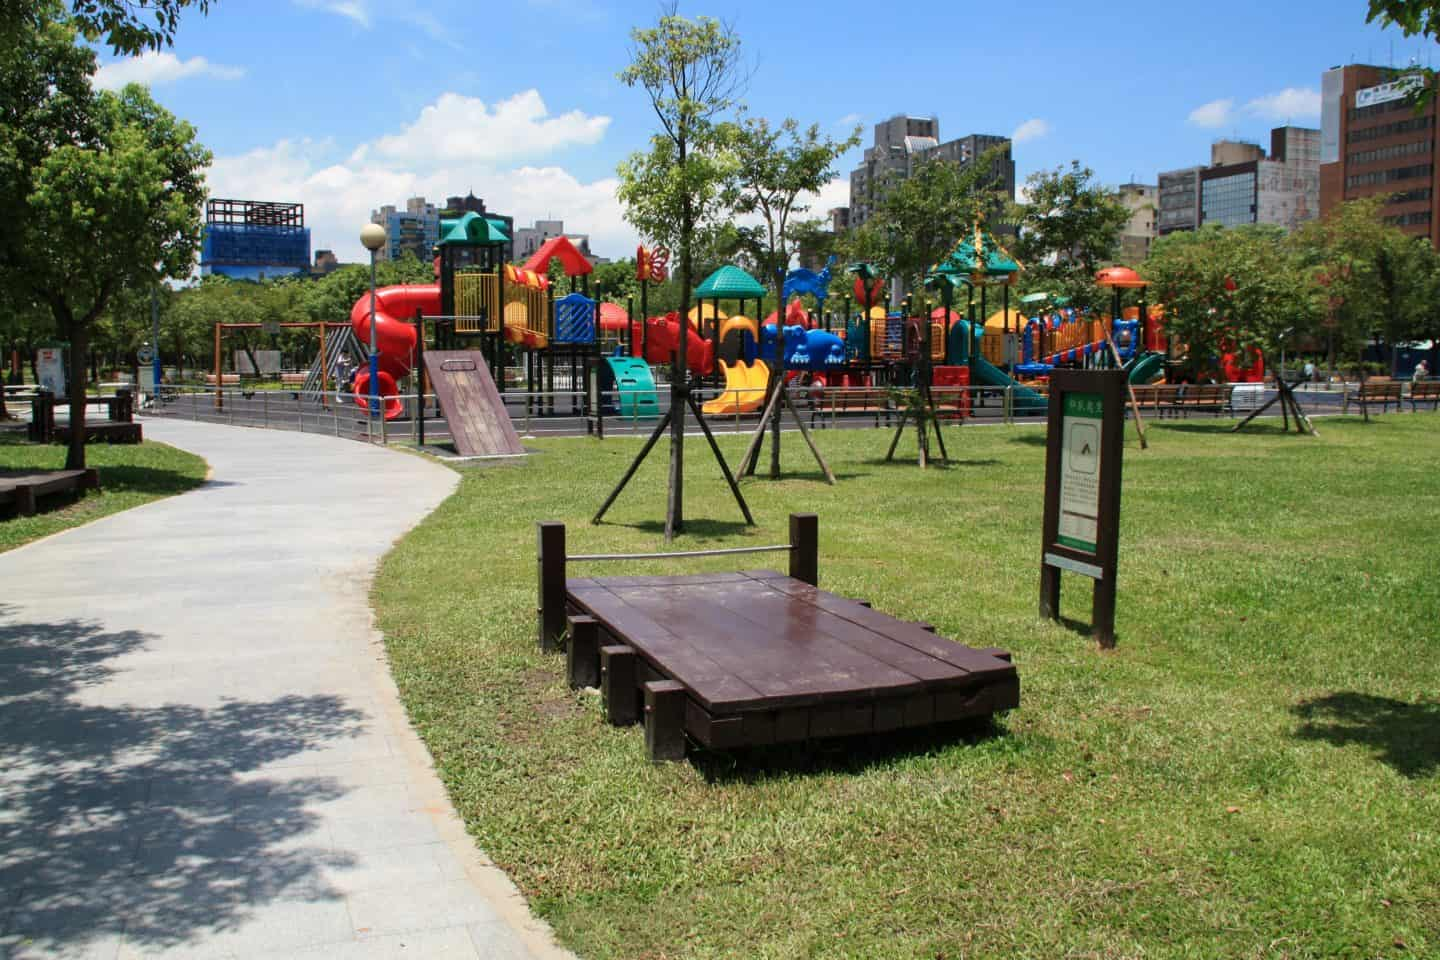 Playground at Daan Park for kids